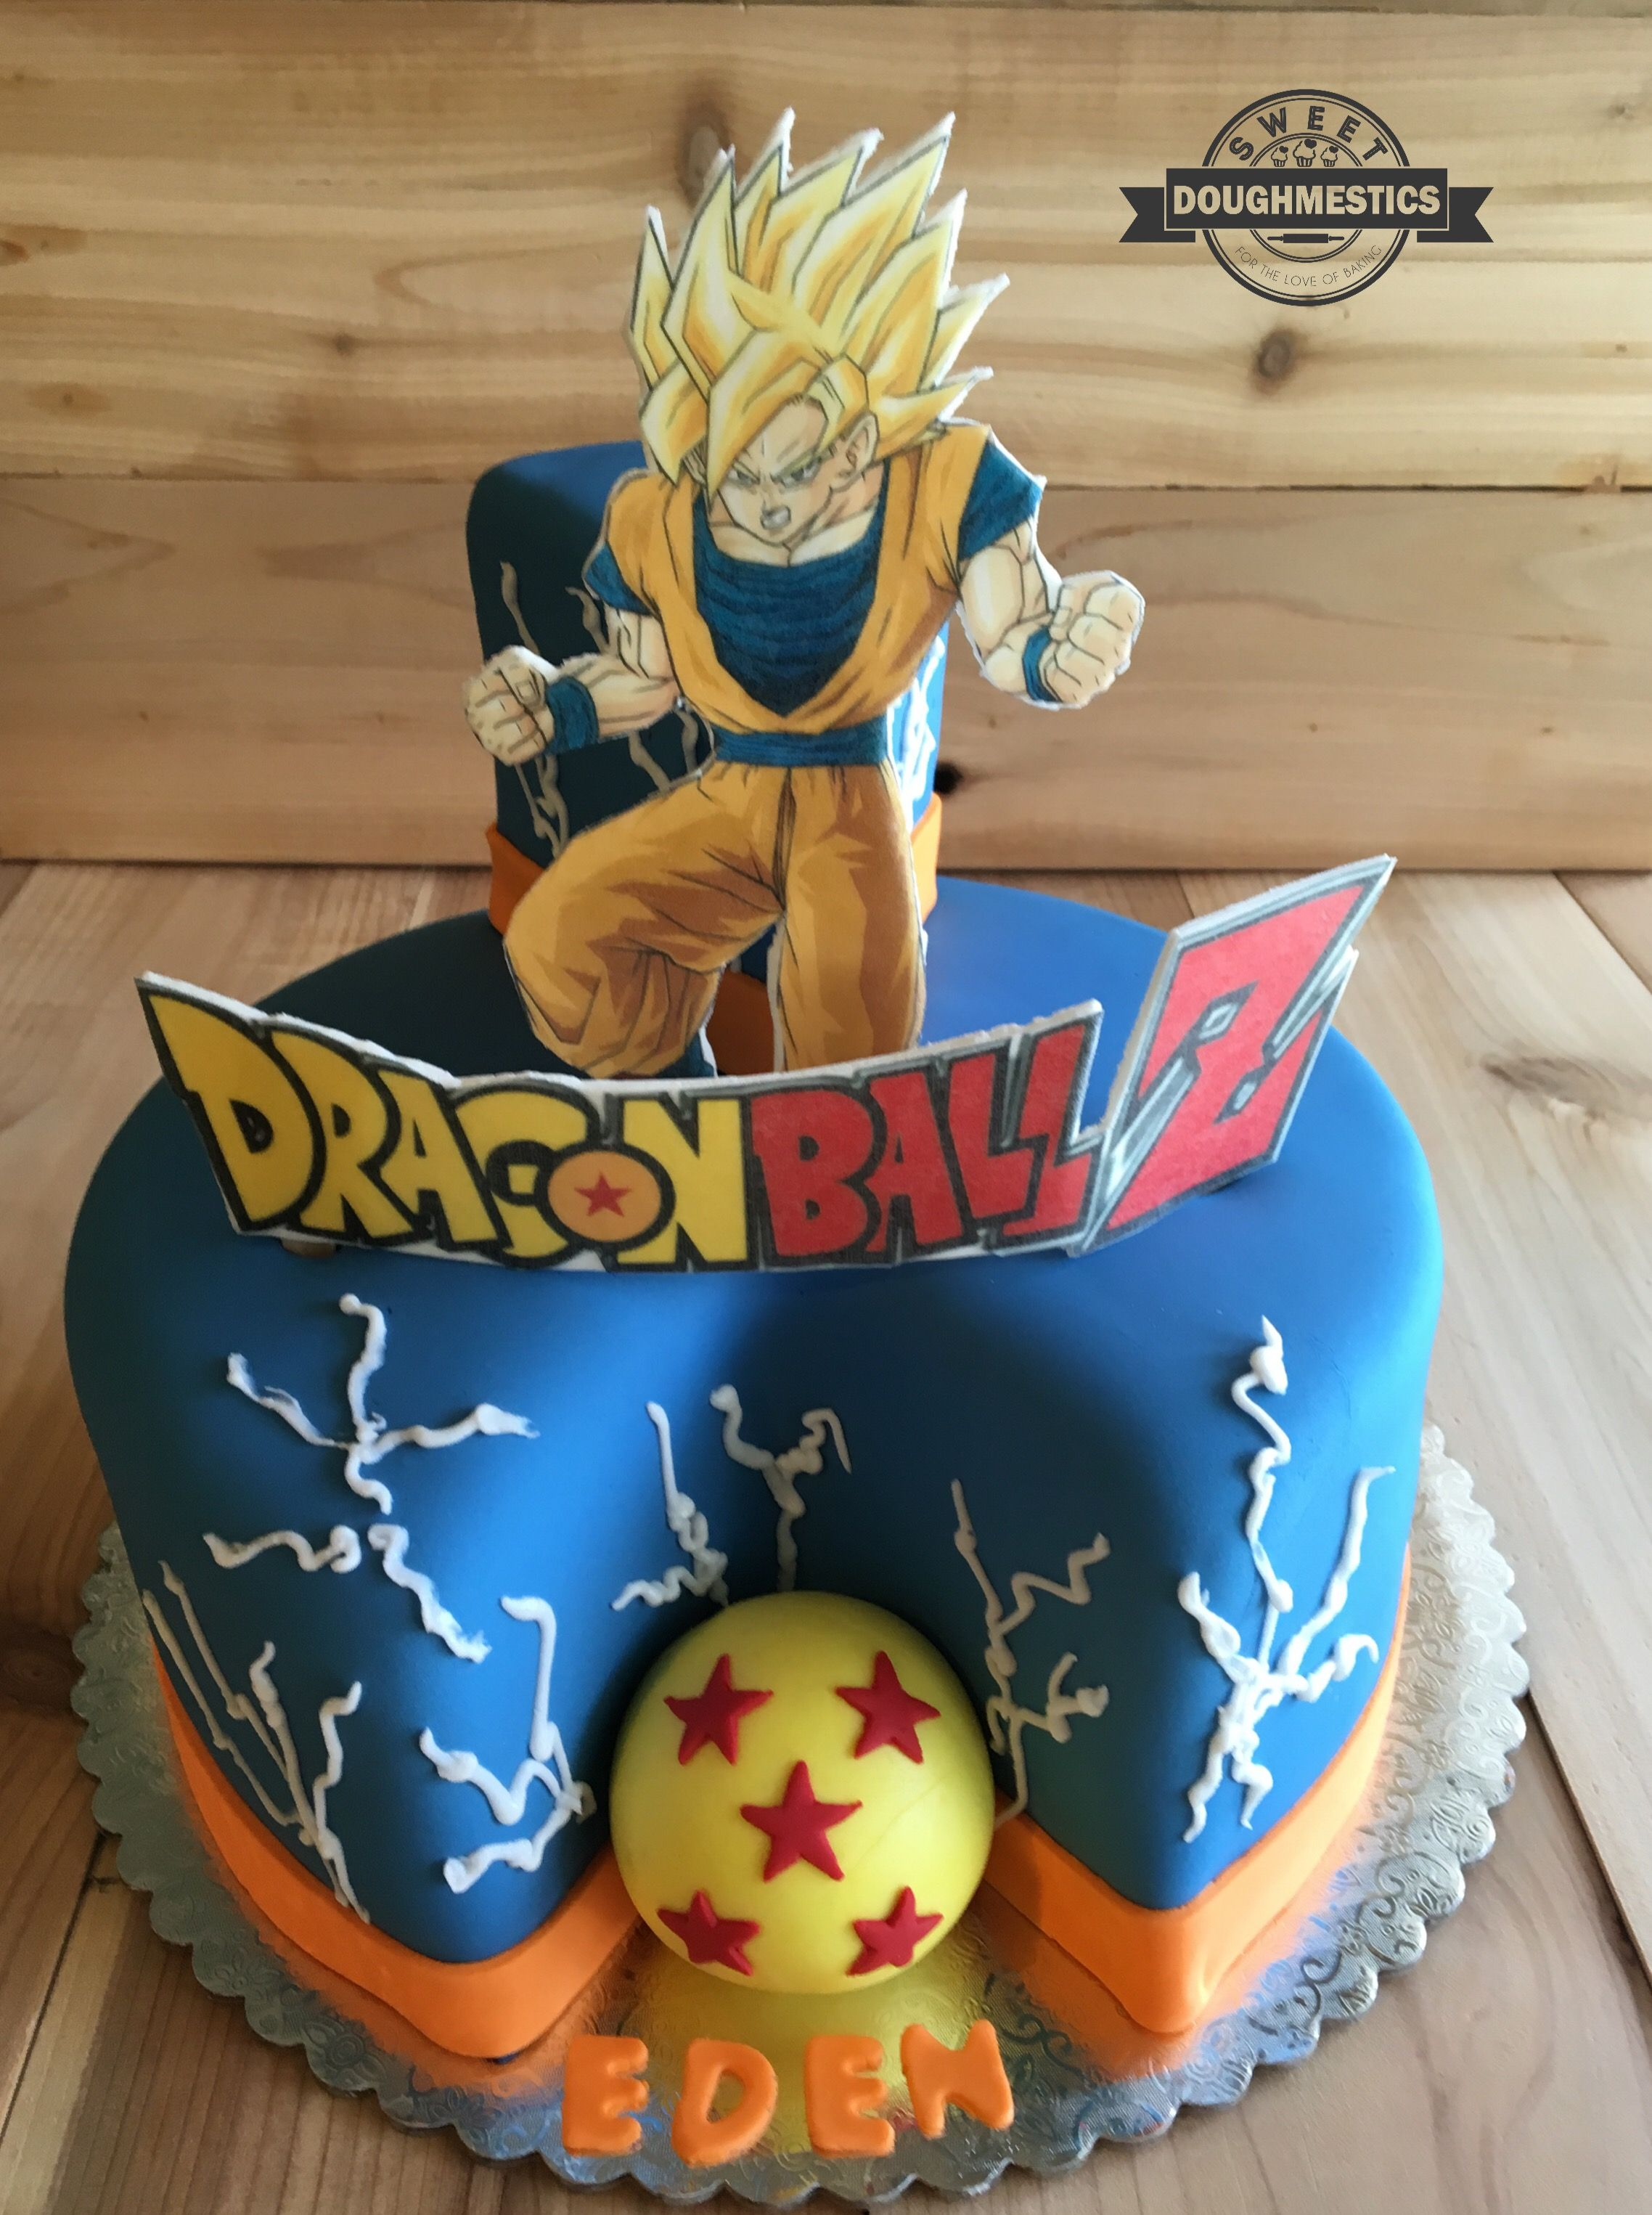 Dragon Ball Z Cake by Sweet Doughmestics Sweet Doughmestics